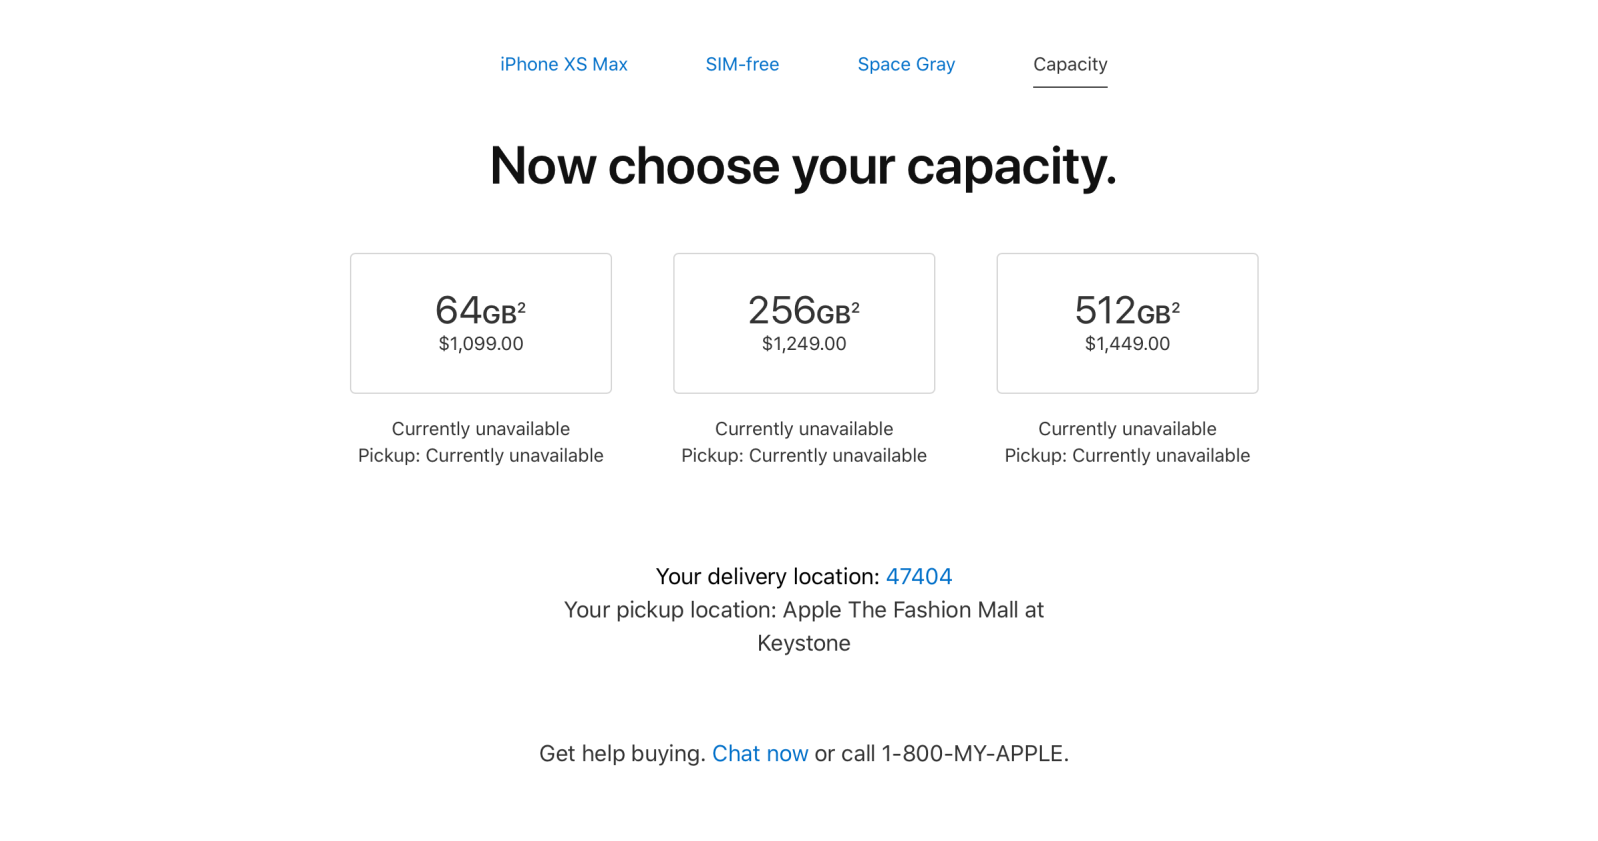 iphone xs costs 1 349 for 512gb of storage iphone xs max hits 1 449